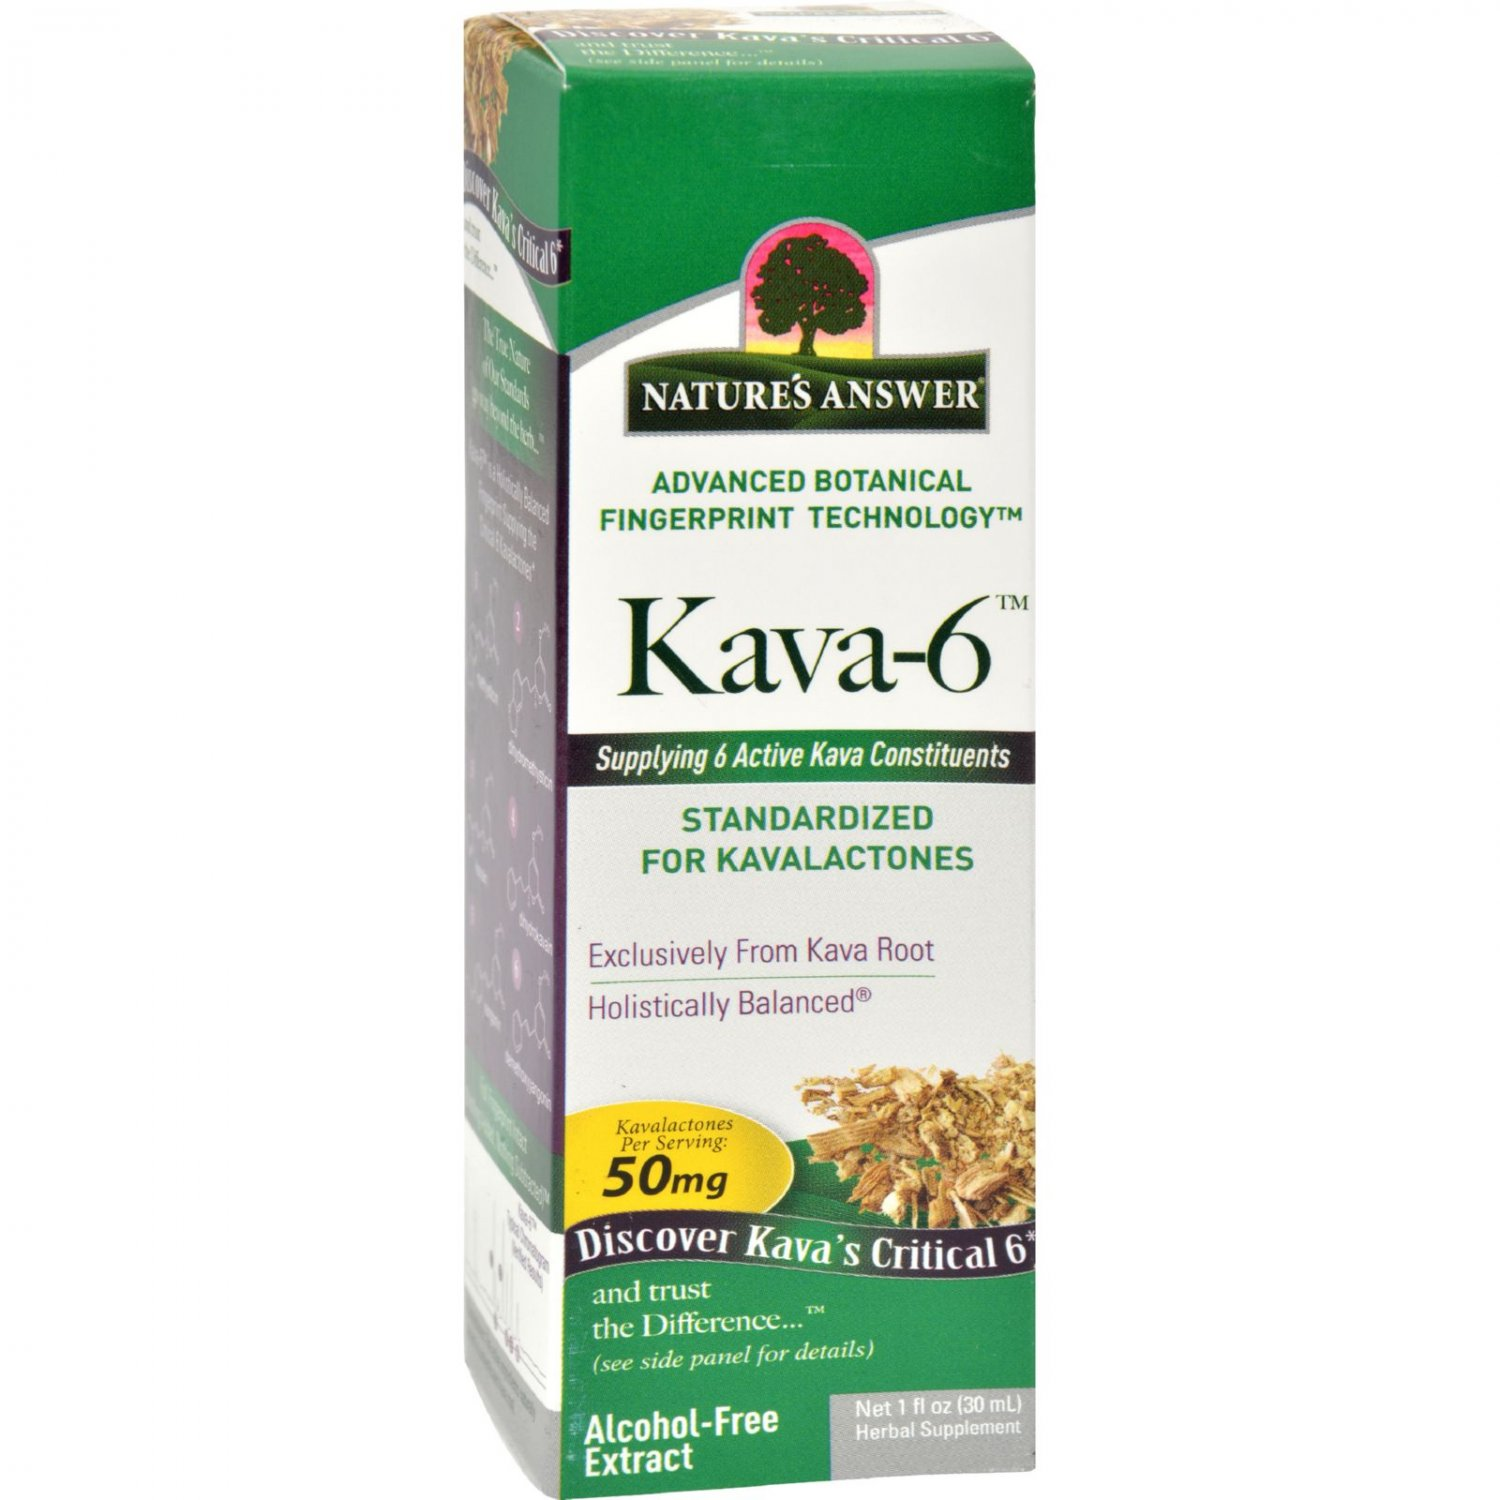 Nature's Answer Kava 6 Extract - Alcohol Free - 1 oz